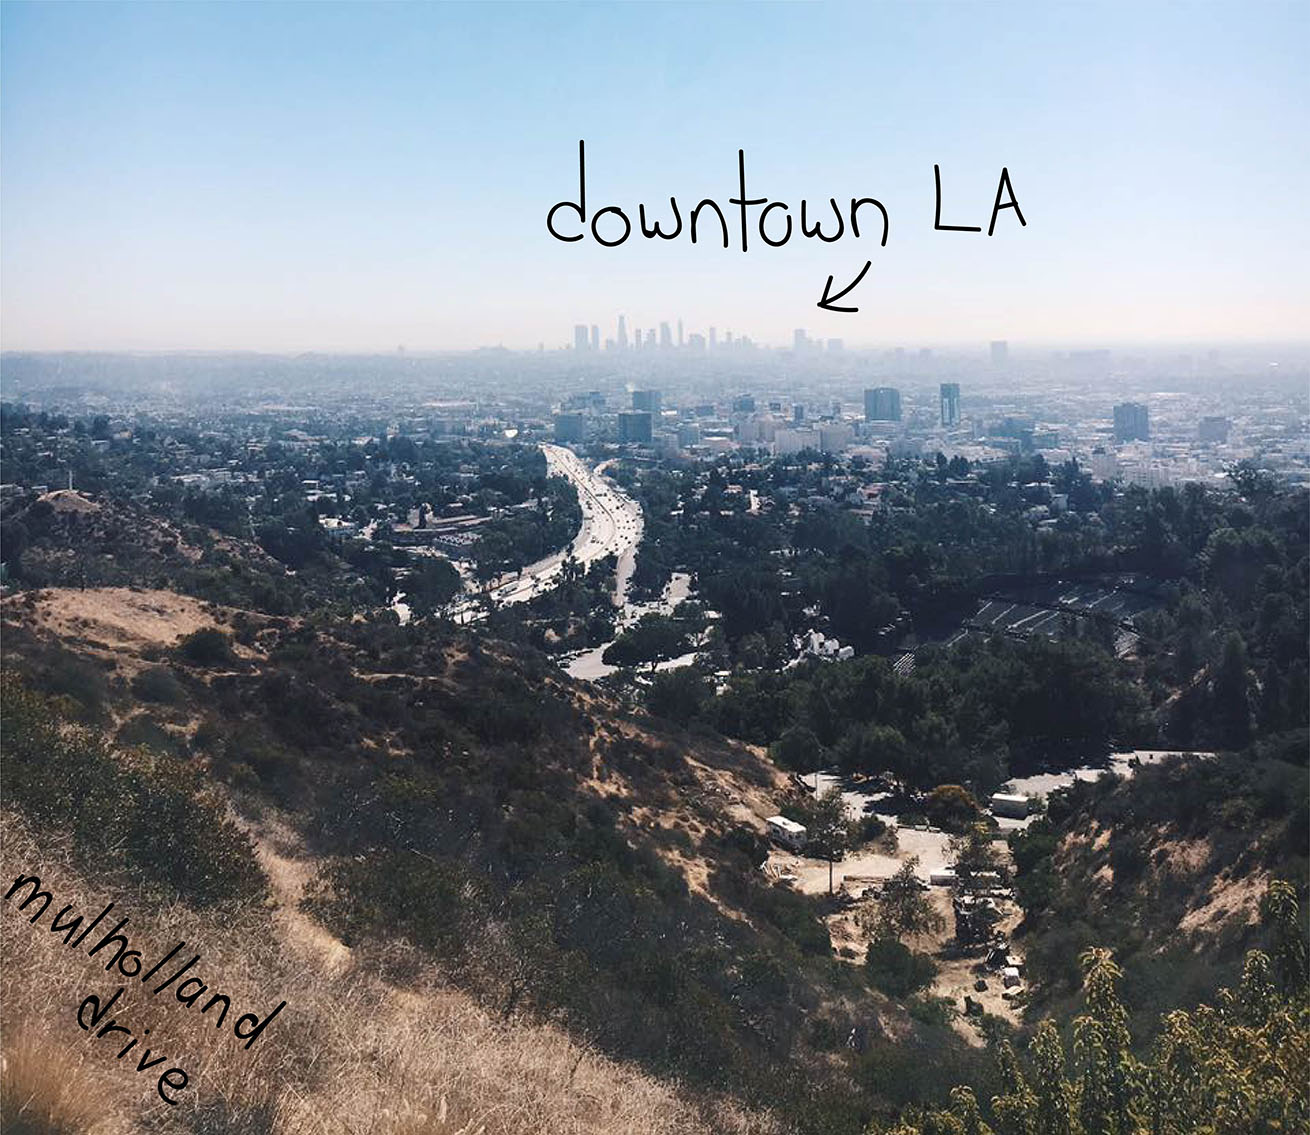 view of downtown LA and the 101 highway from Mulholland drive viewpoint